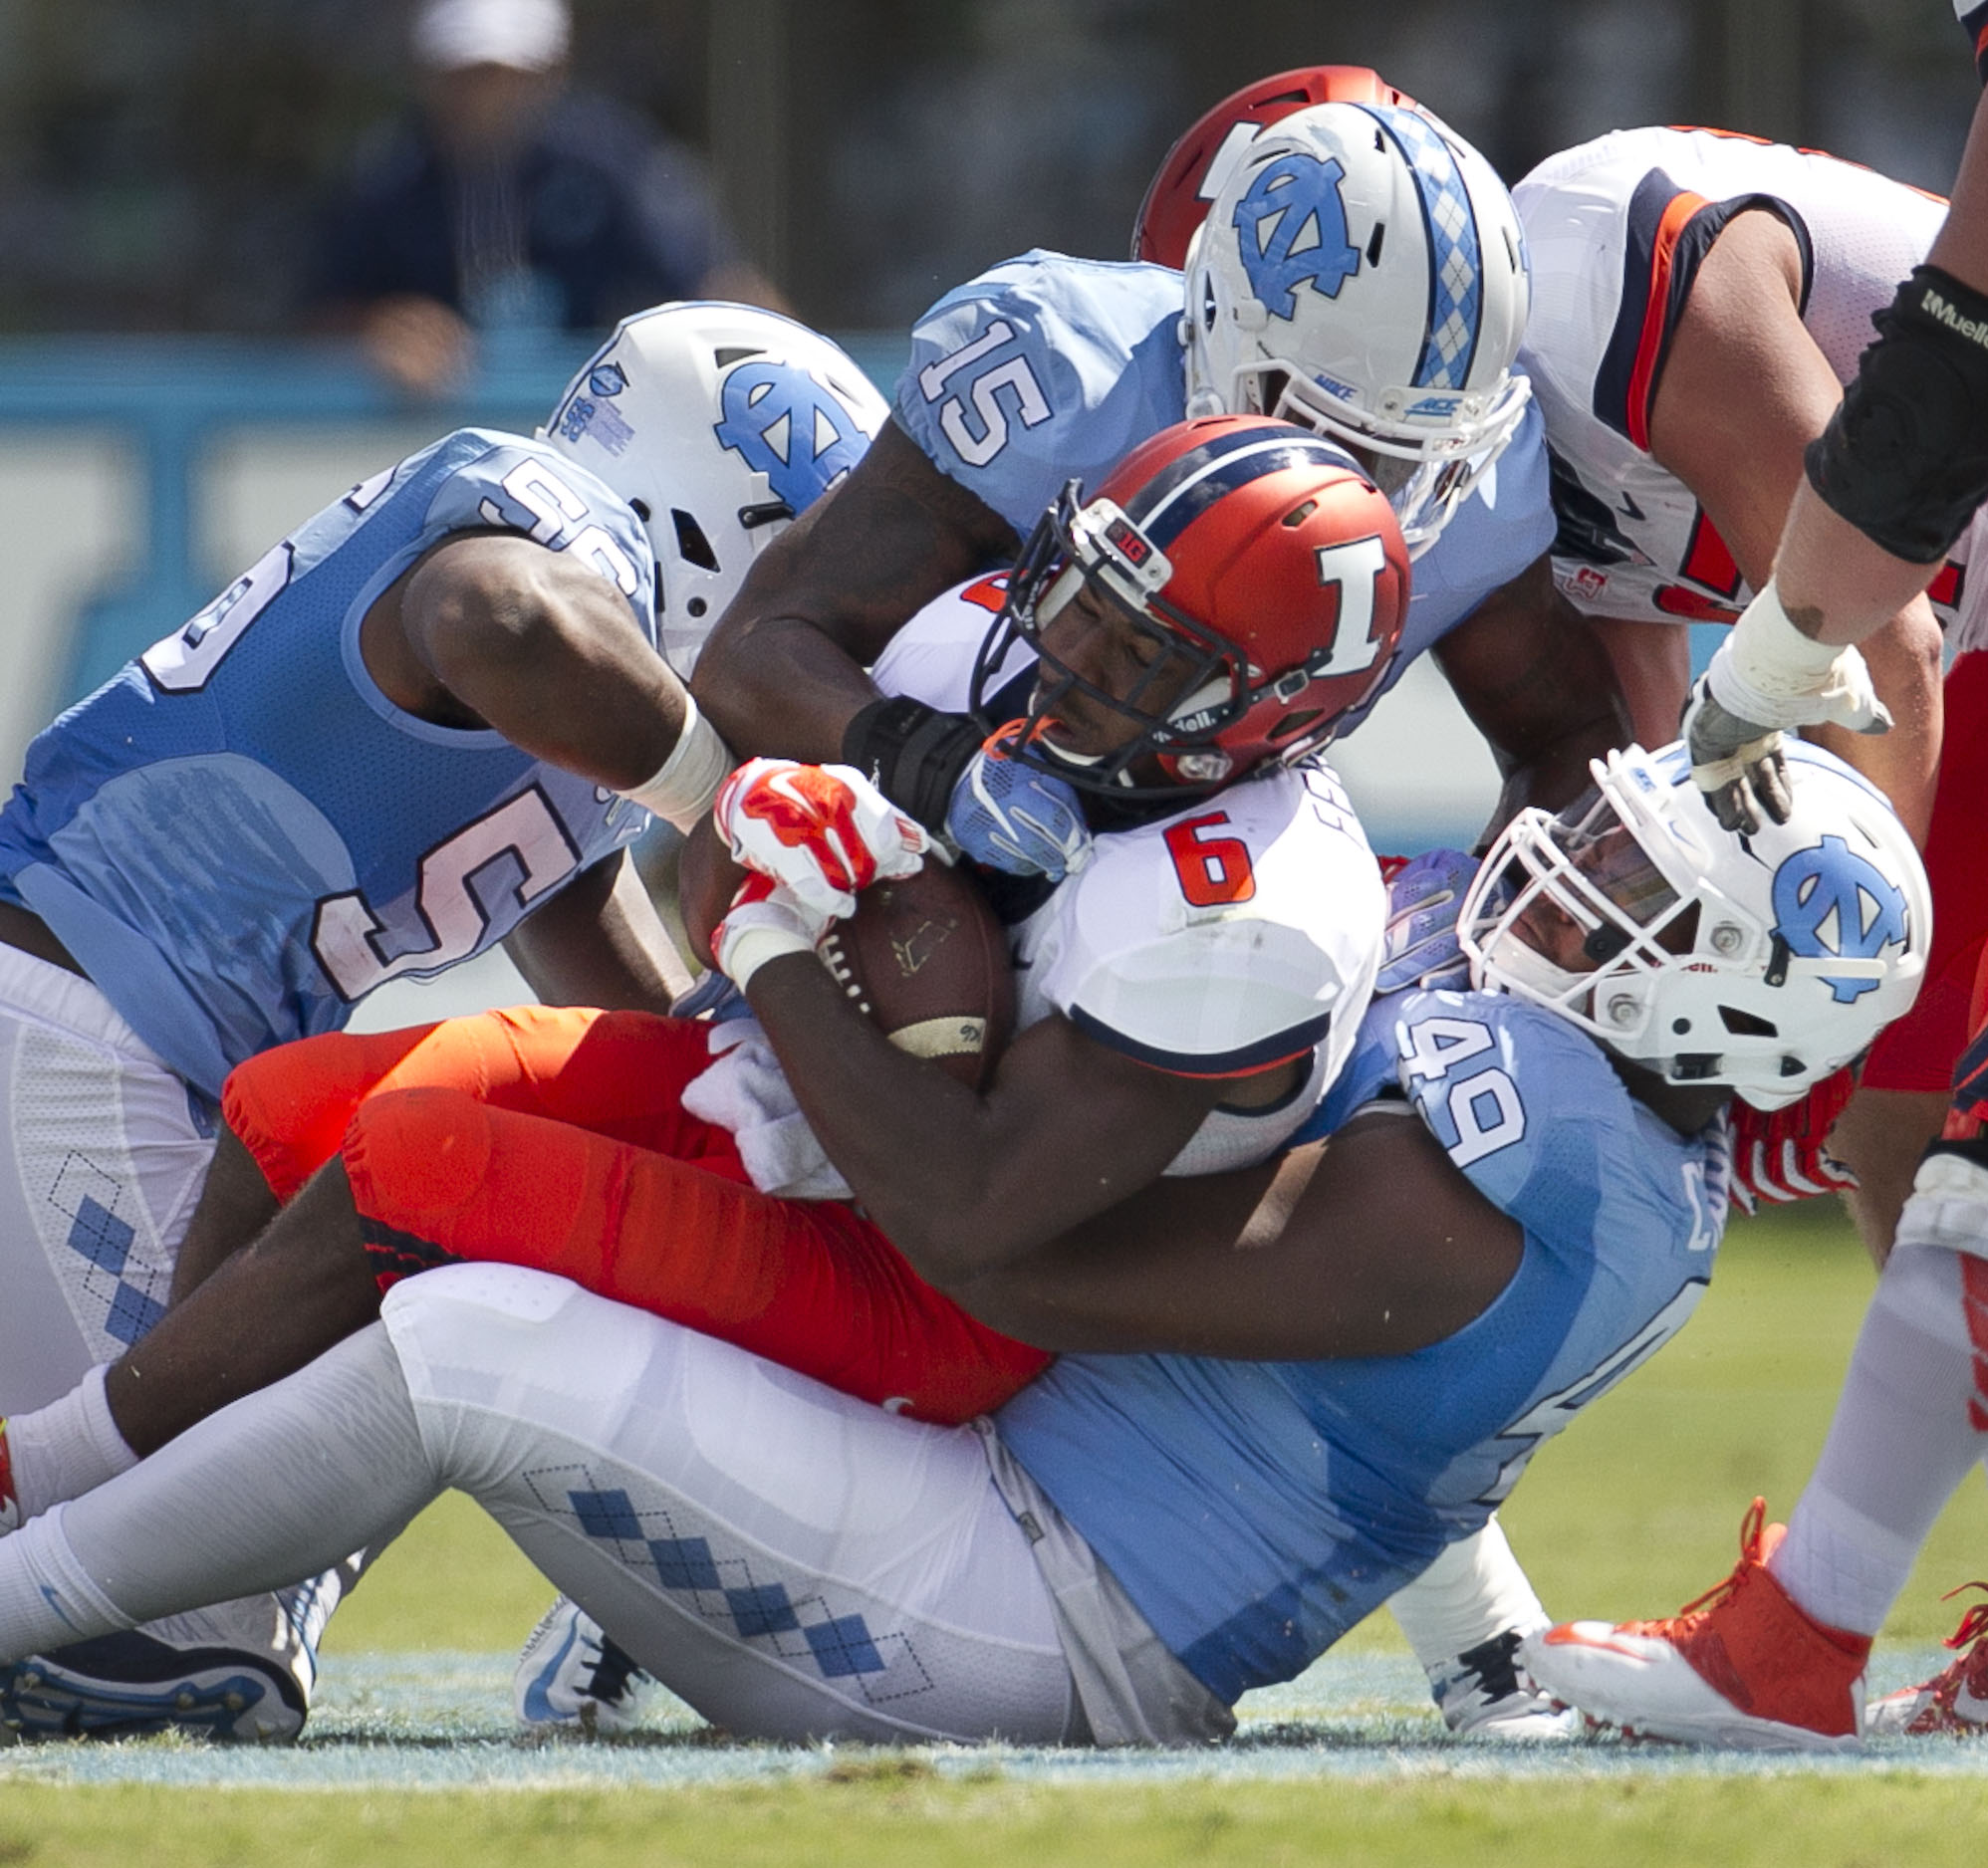 North Carolina's Jeremiah Clarks (49) and Donnie Miles (15) stop Illinois' Josh Ferguson (6) for a loss in the first half of an NCAA football game, Saturday, Sept. 19, 2015 at Kenan Stadium in Chapel Hill, N.C. (Robert Willett/The News & Observer via AP)